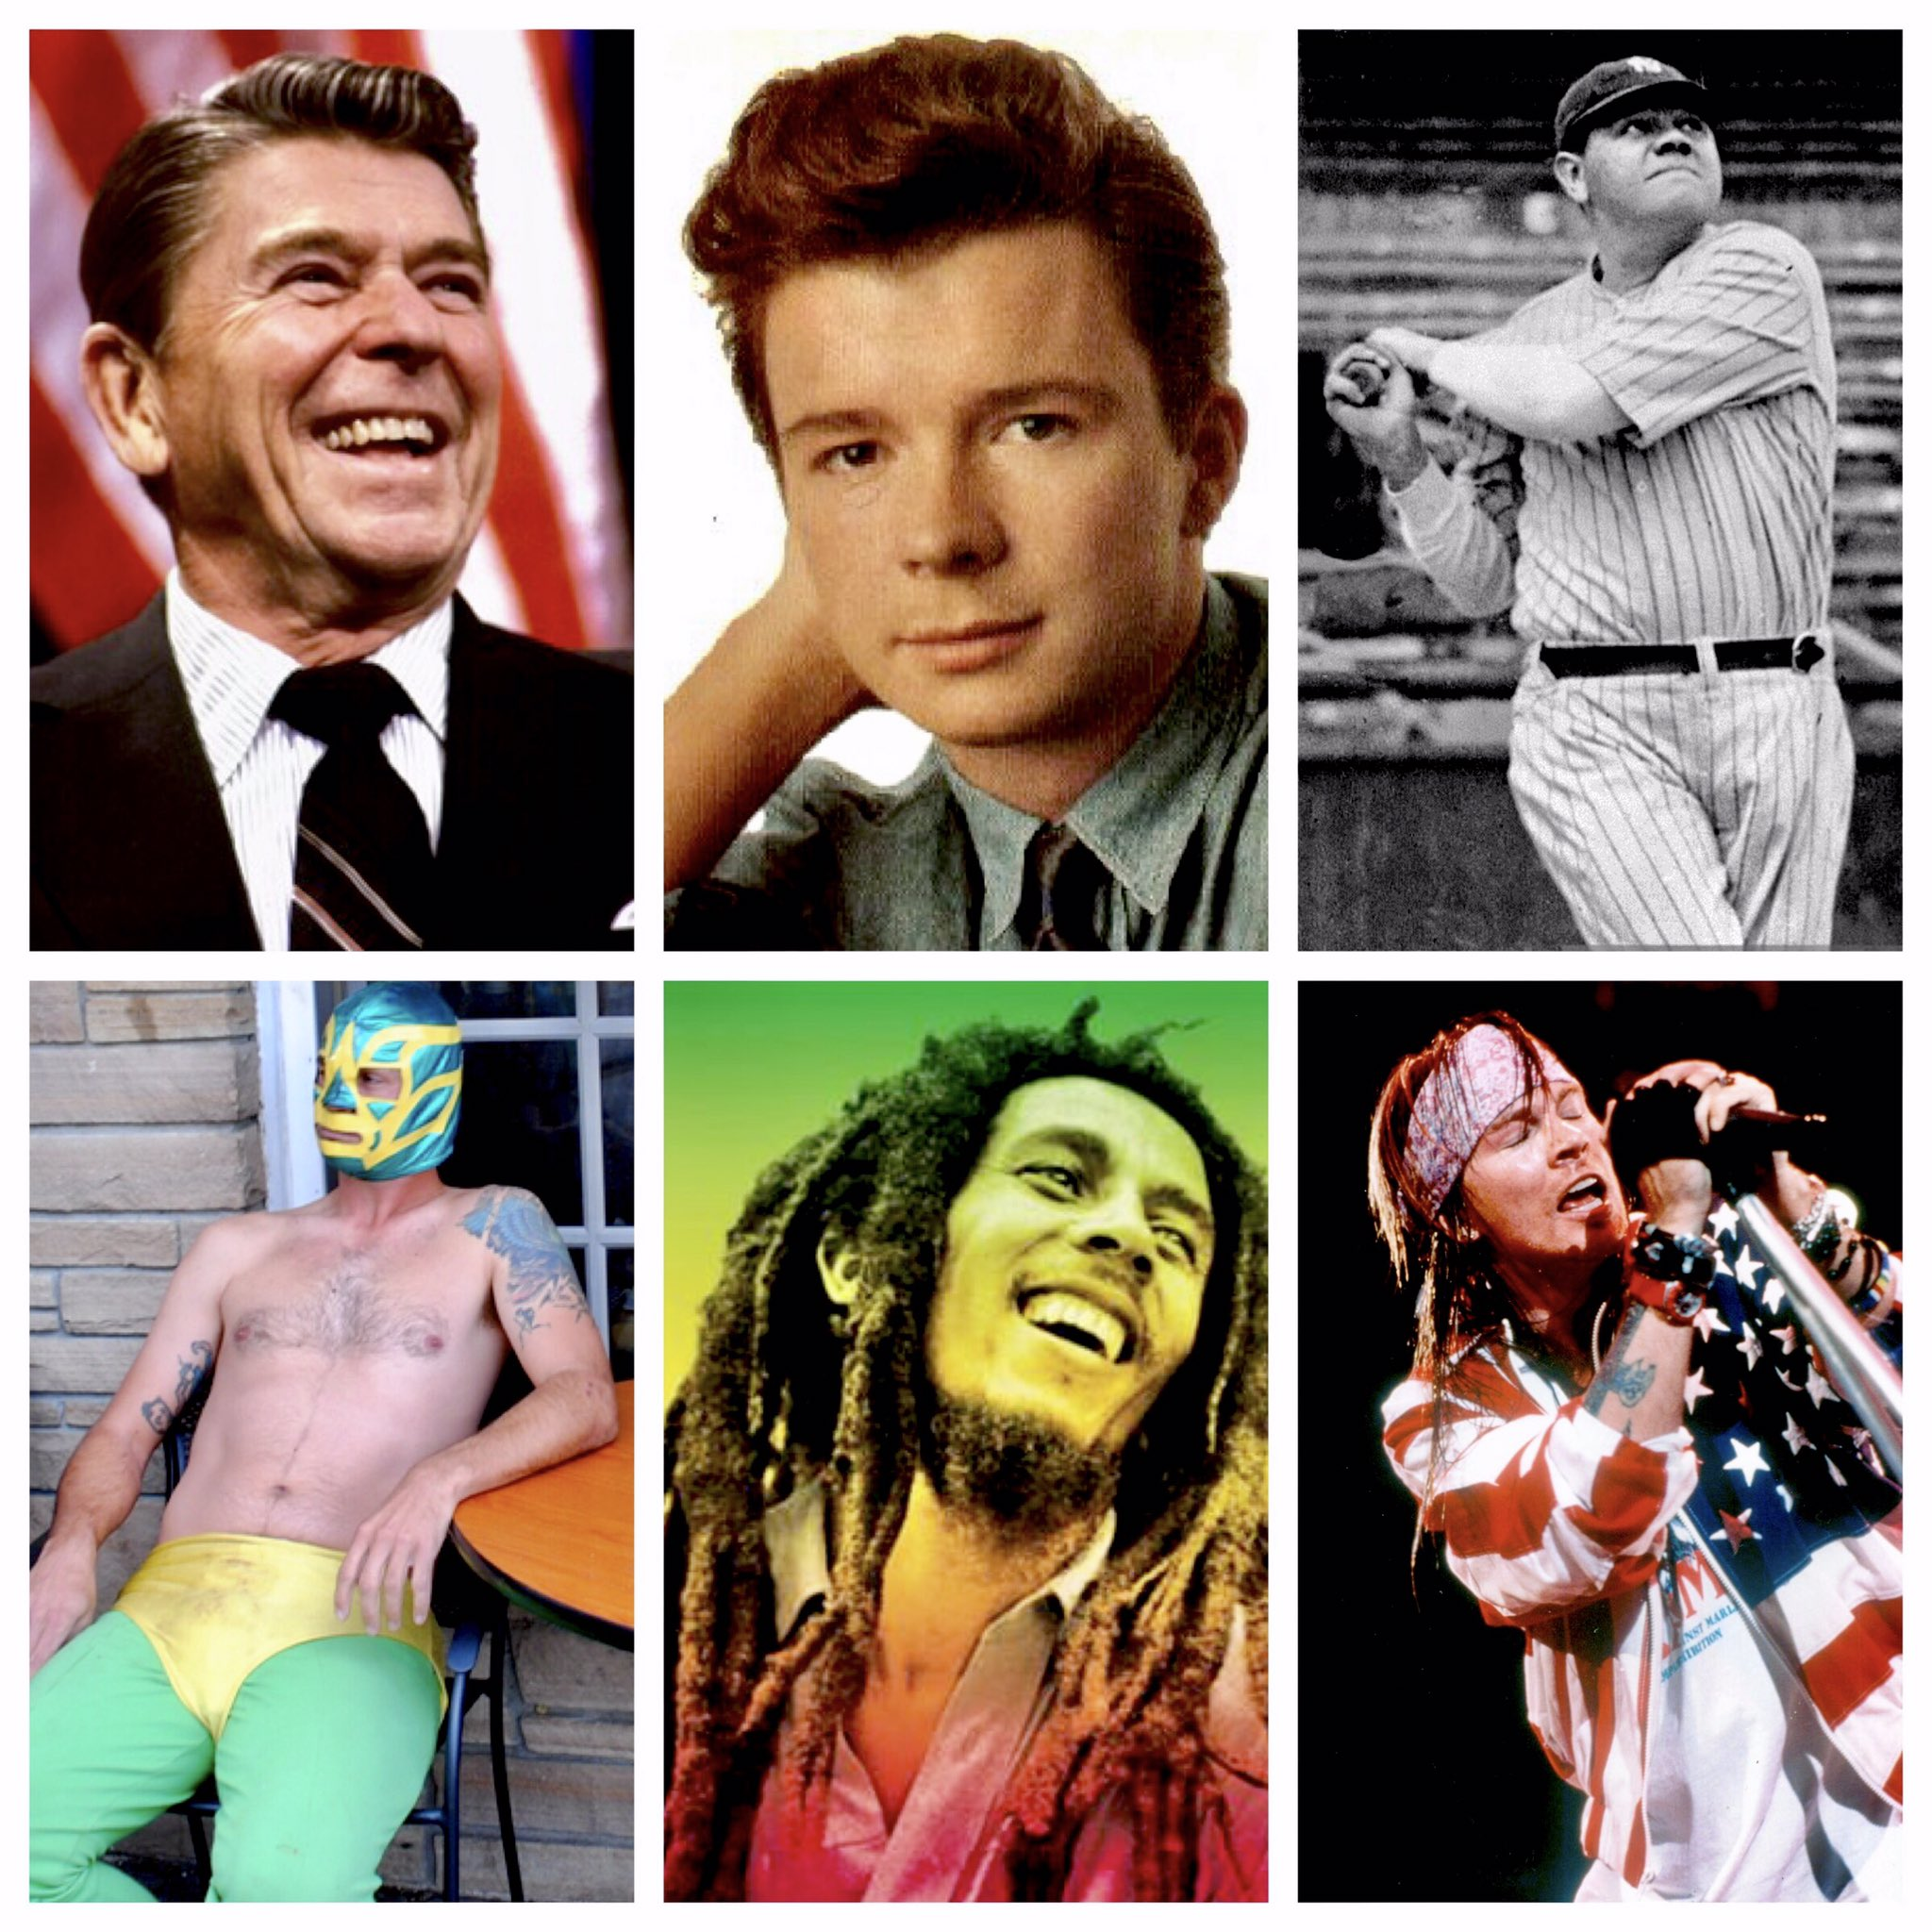 HAPPY BIRTHDAY Ronald Reagan, Rick Astley, Babe Ruth, Axl Rose, Bob Marley and...El Vortex!